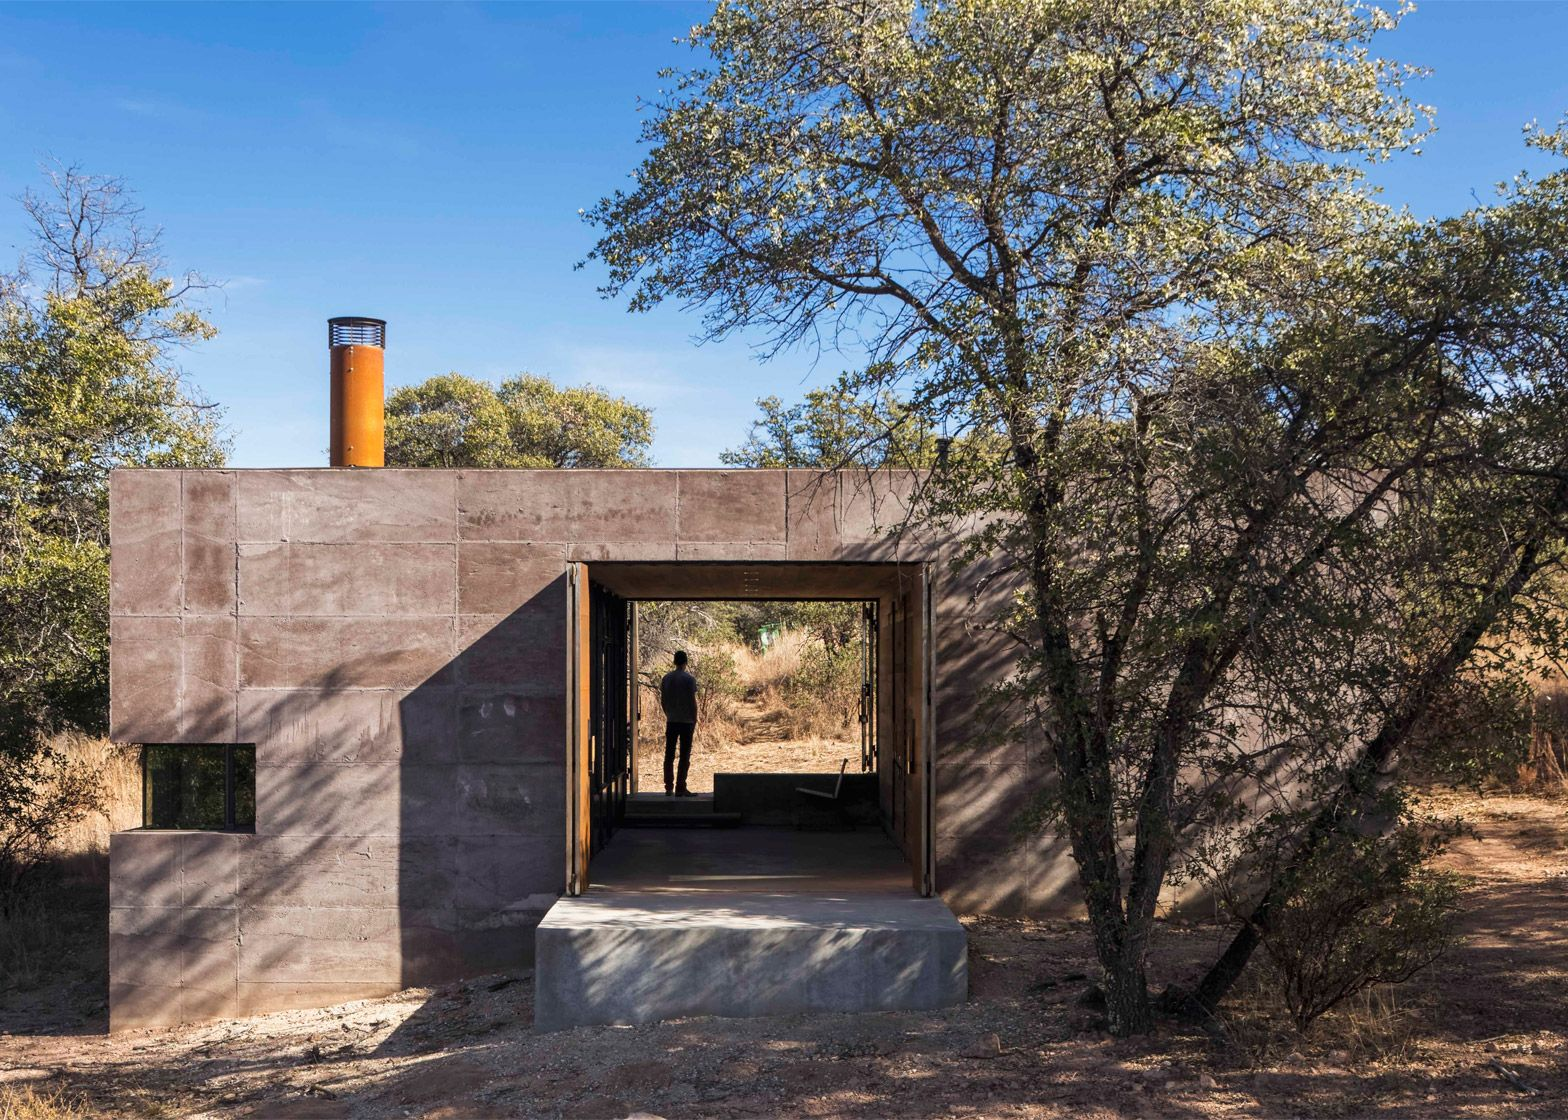 Arizona Studio Dust Has Created A Desert Home South Of Tucson Using Volcanic Residue To Form Rammed Earth Walls Desert Homes Zombie Proof House Architecture